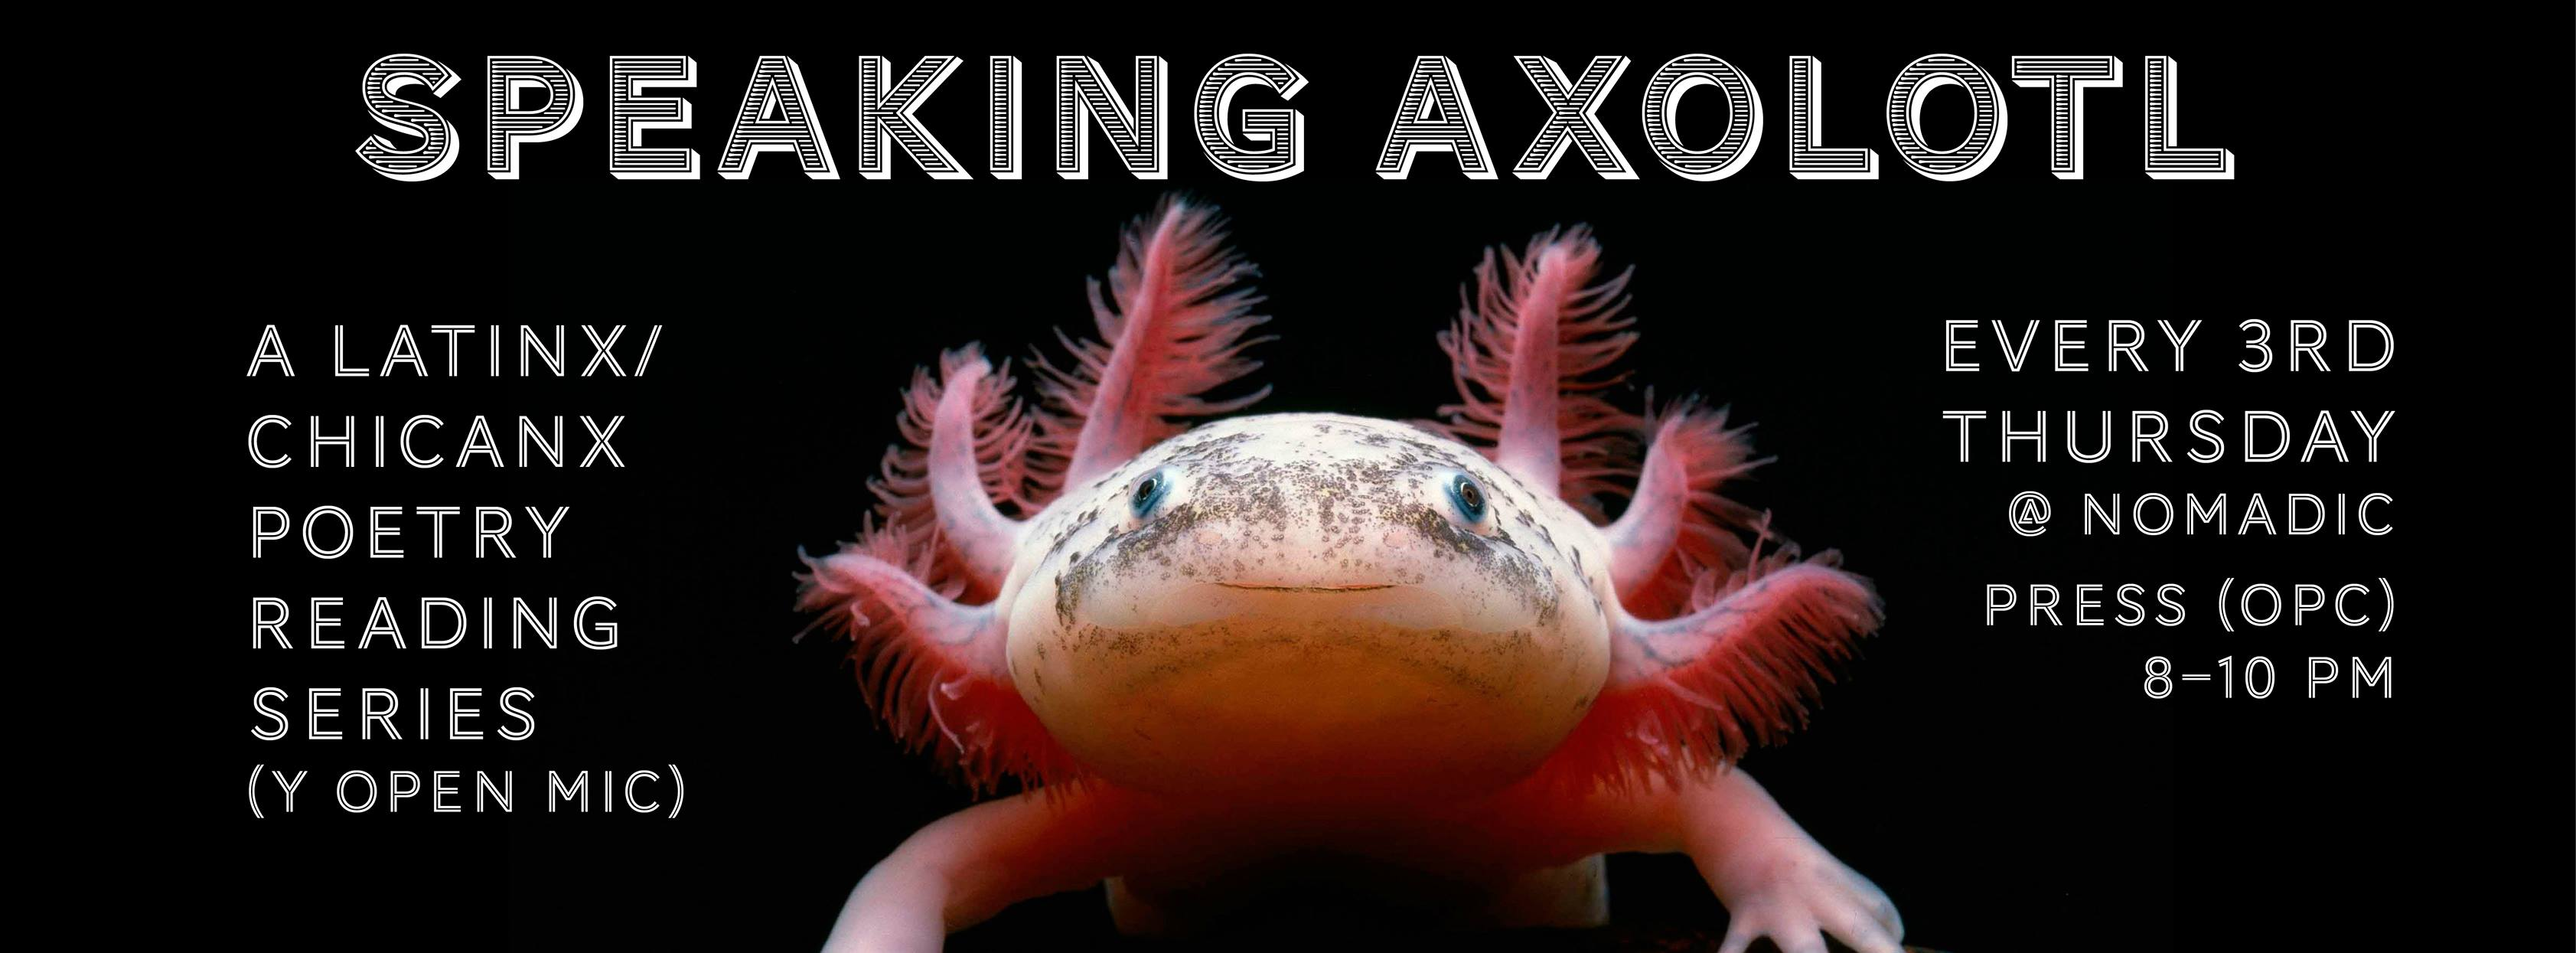 flier for Speaking Axolotl